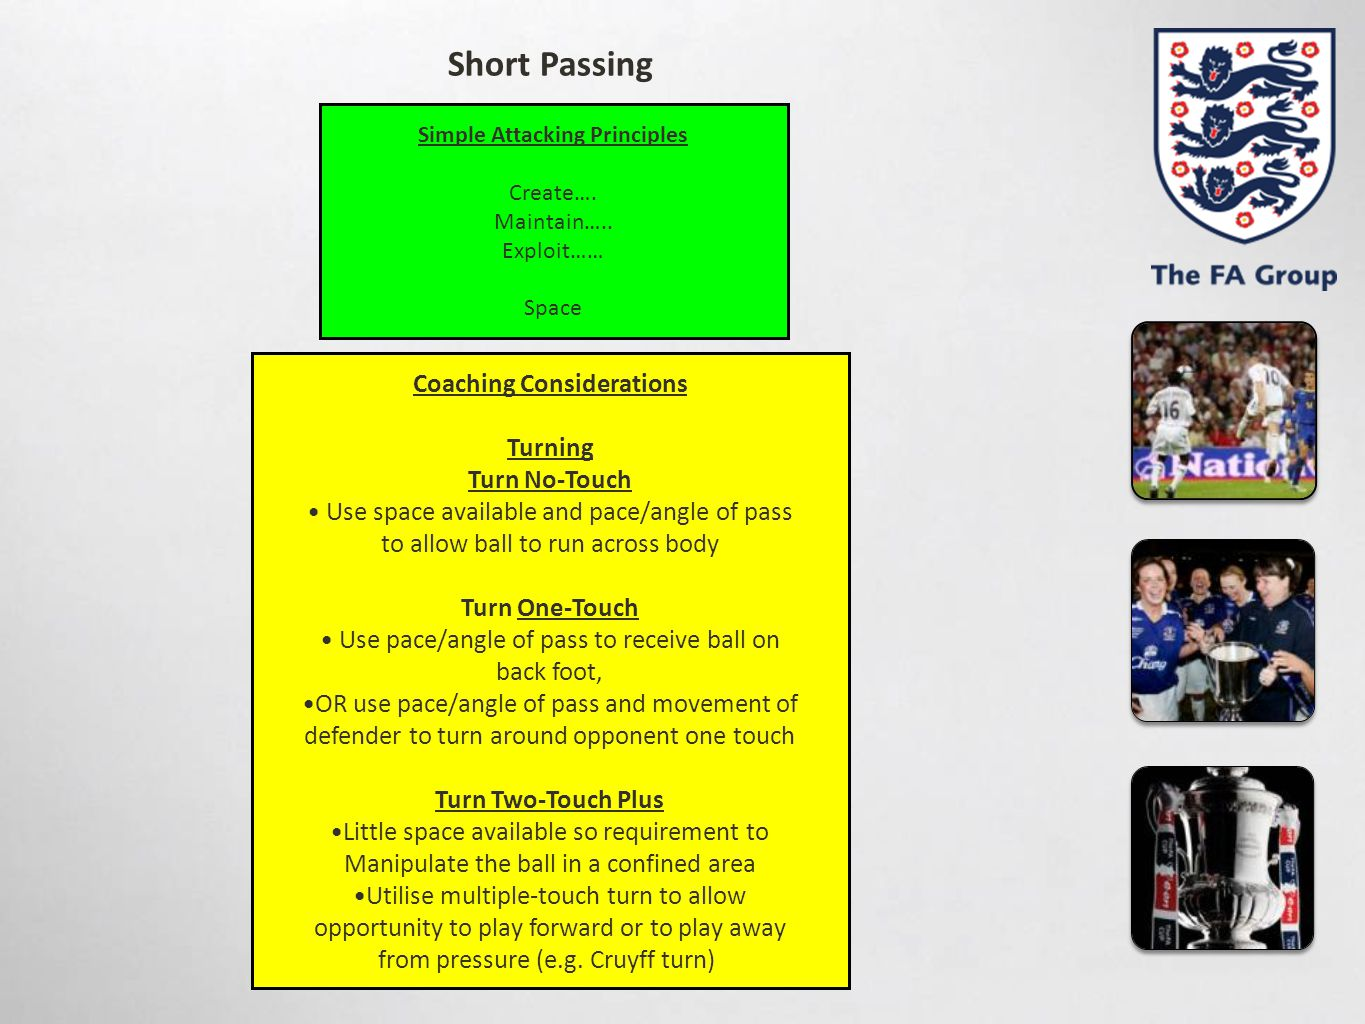 Simple Attacking Principles Coaching Considerations